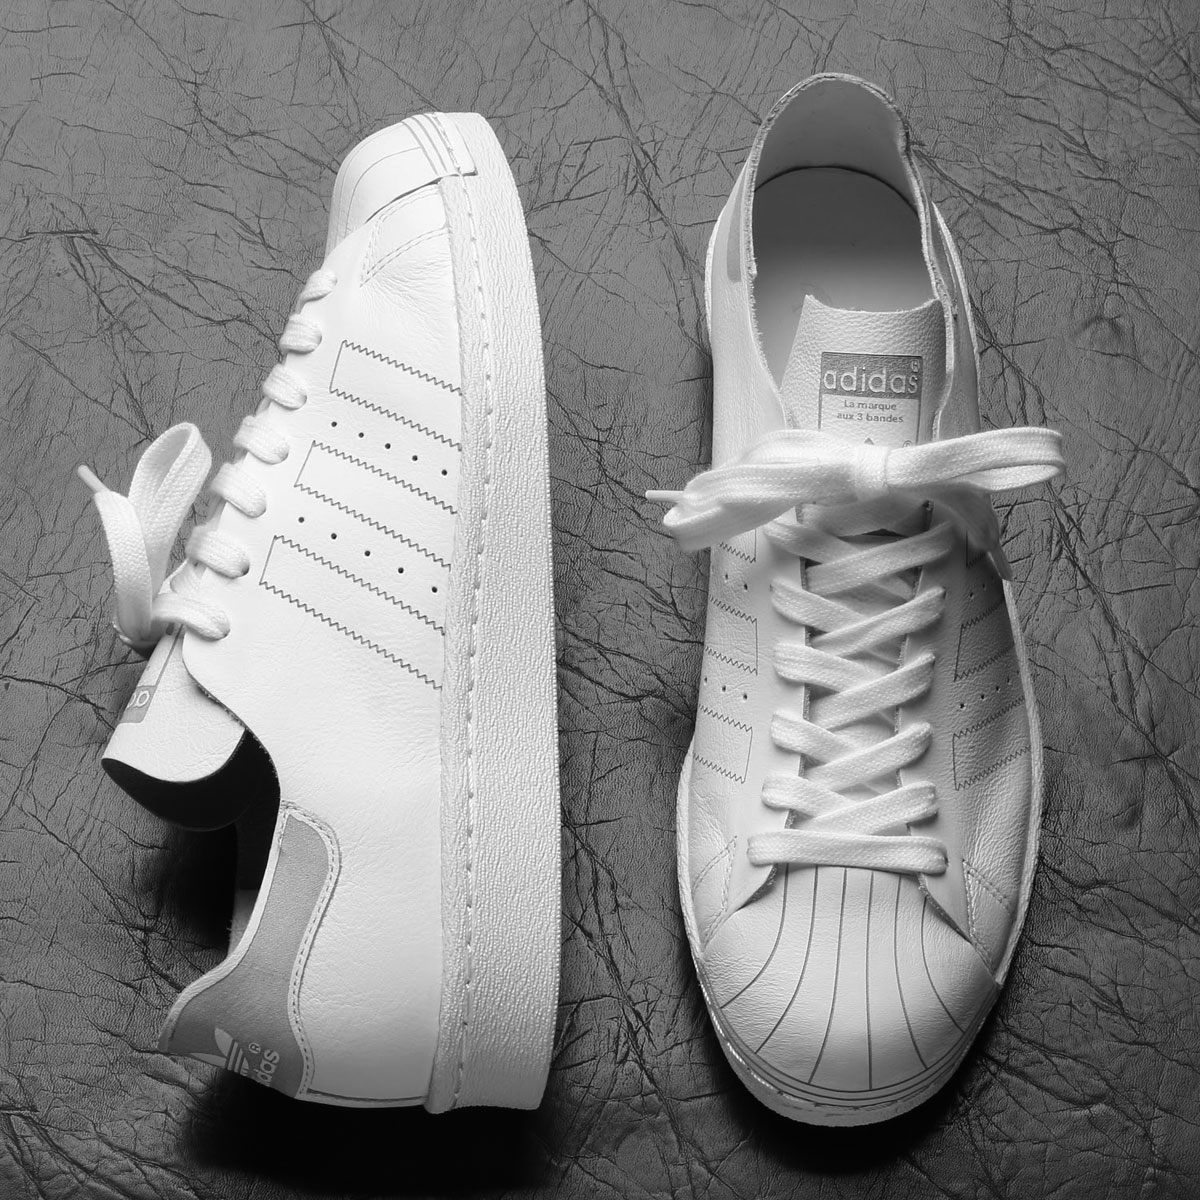 adidas Originals SUPERSTAR 80s DECON(アディダス オリジナルス スーパースター 80s DECON)RUNNING WHITE/RUNNING WHITE/VINTAGE WHITE【メンズ レディース スニーカー】17FW-S